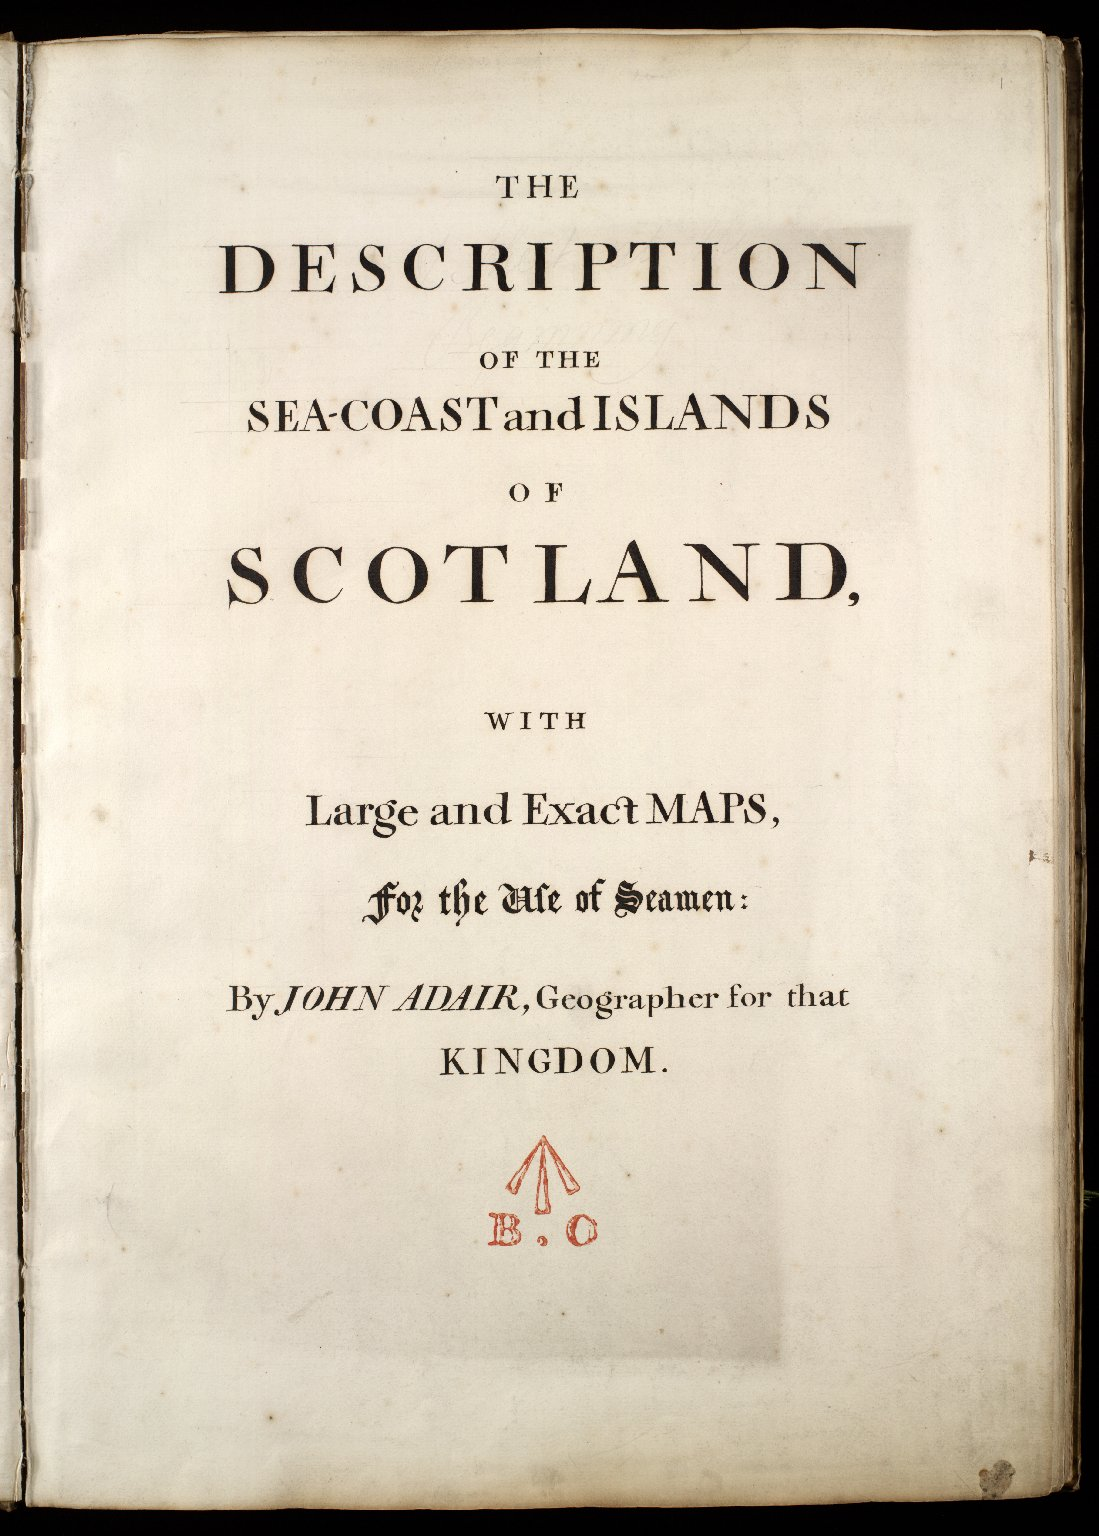 The Description of the Sea-Coast and Islands of Scotland with Large and Exact Maps for the Use of Seamen [manuscript copy] [1 of 1]